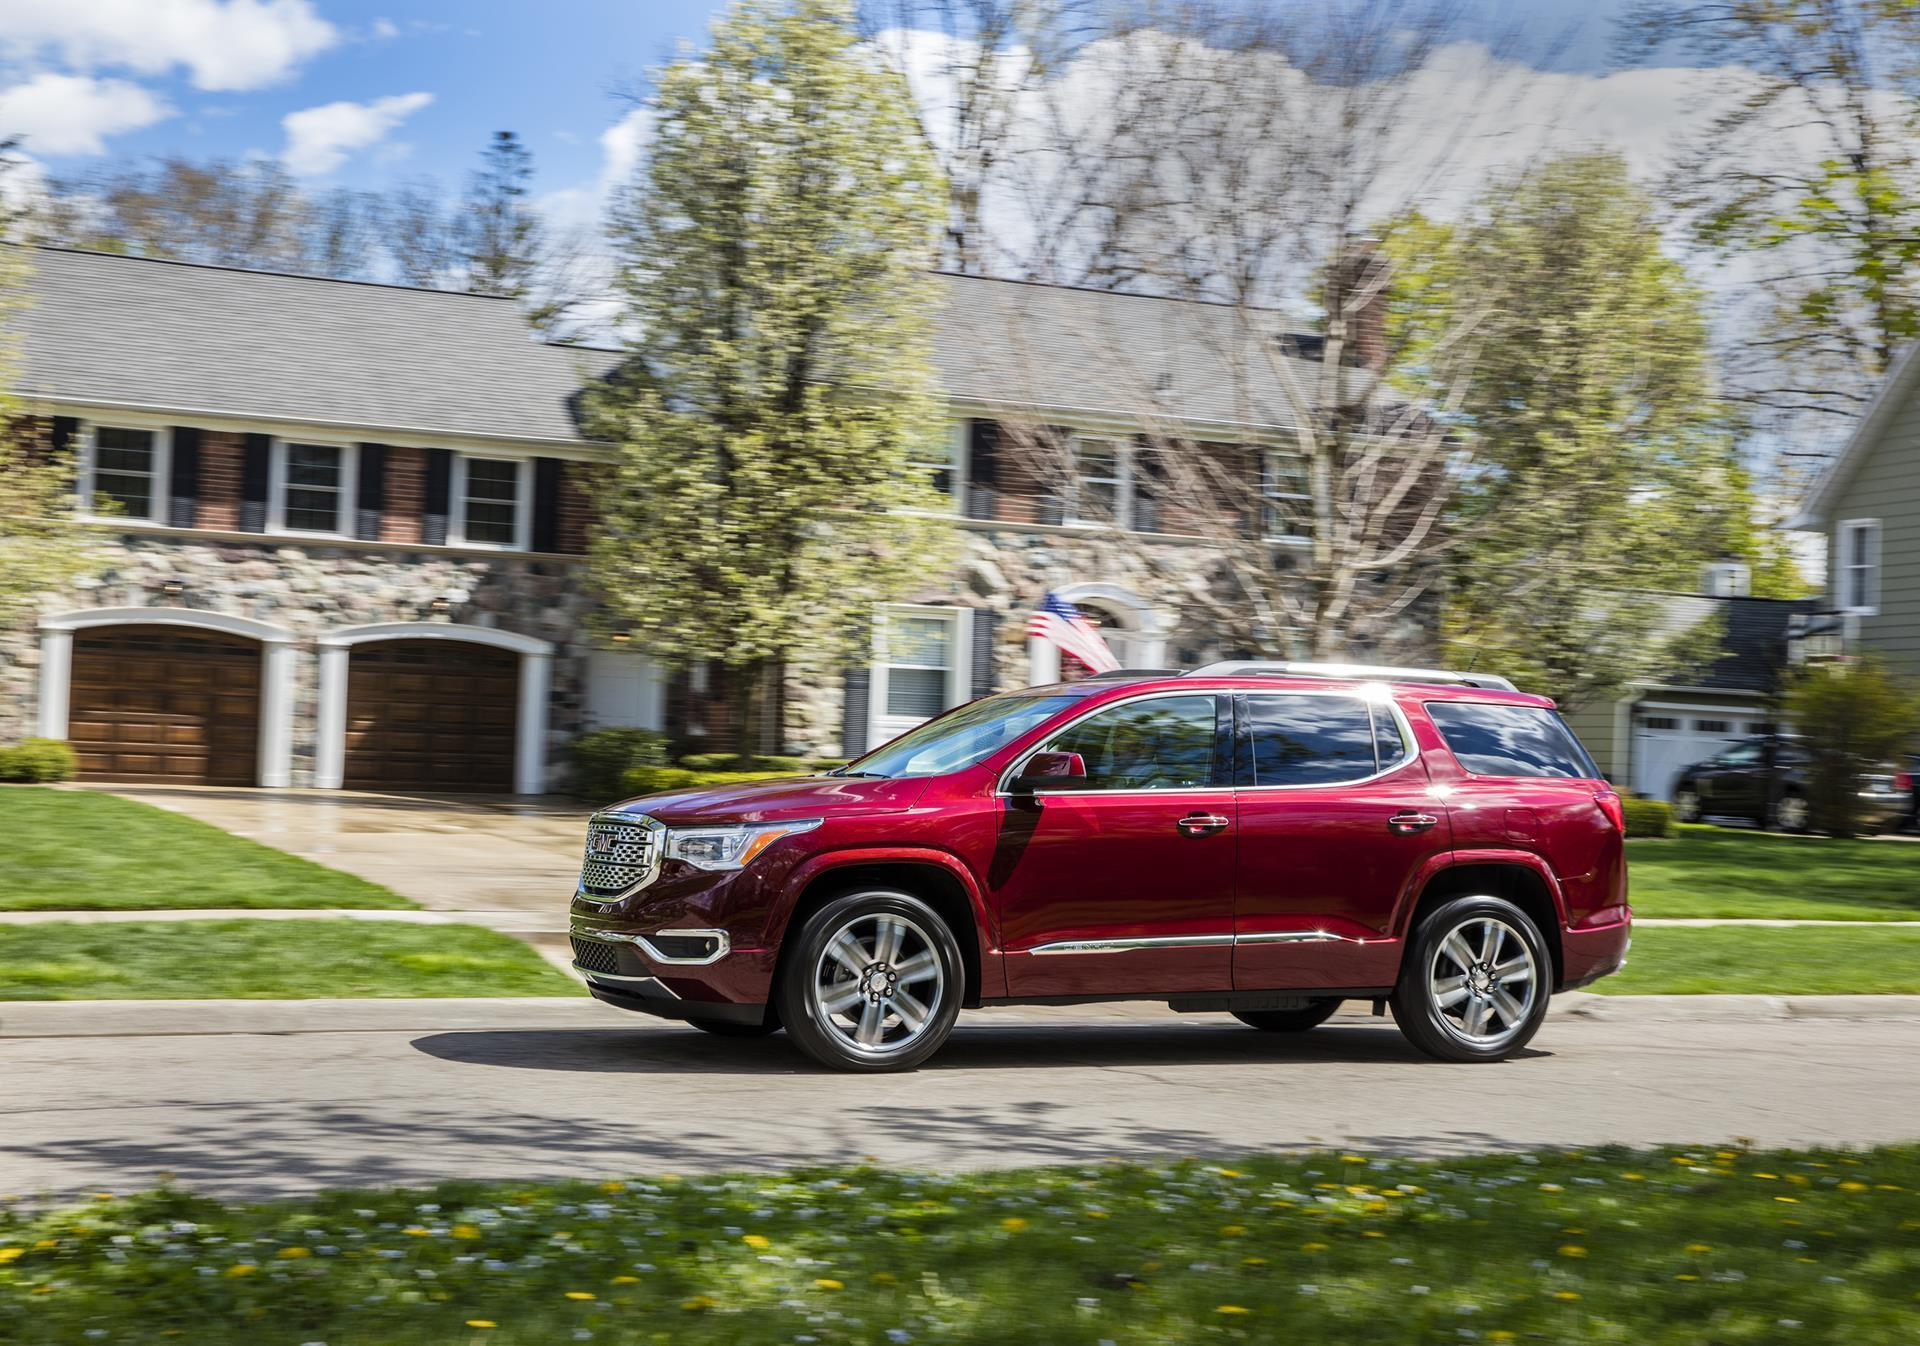 2017 gmc acadia denali technical specifications and data engine dimensions and mechanical. Black Bedroom Furniture Sets. Home Design Ideas